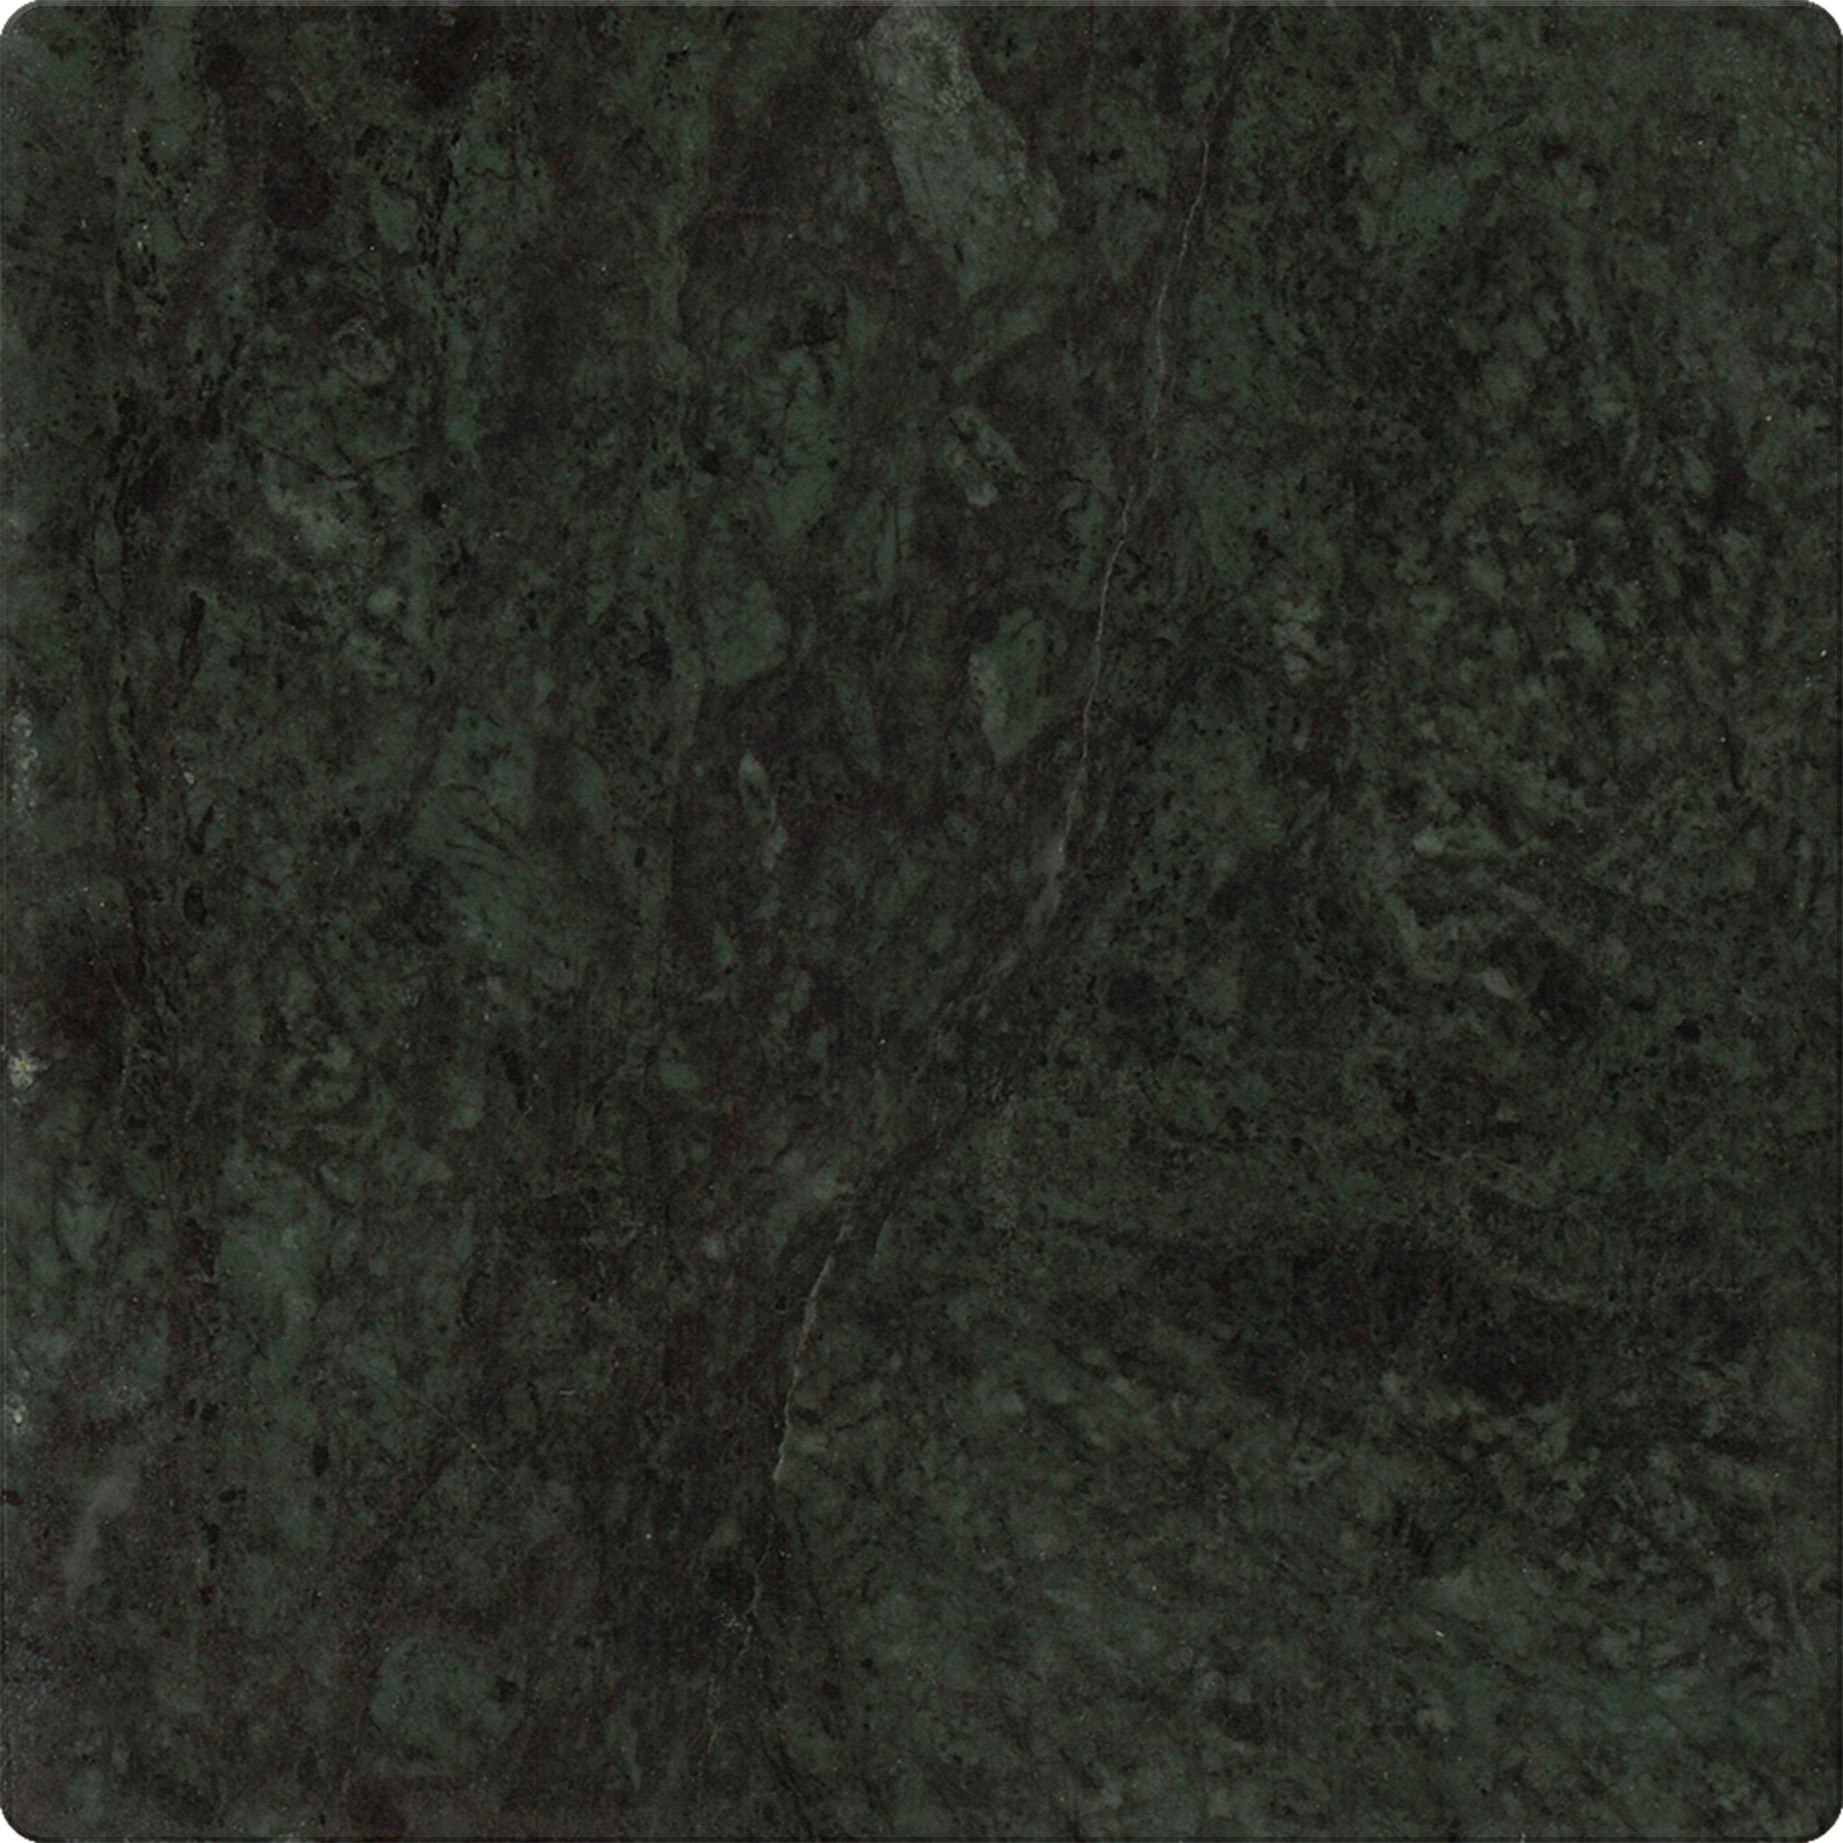 marble table top texture. Oak Table Top Marble Texture O